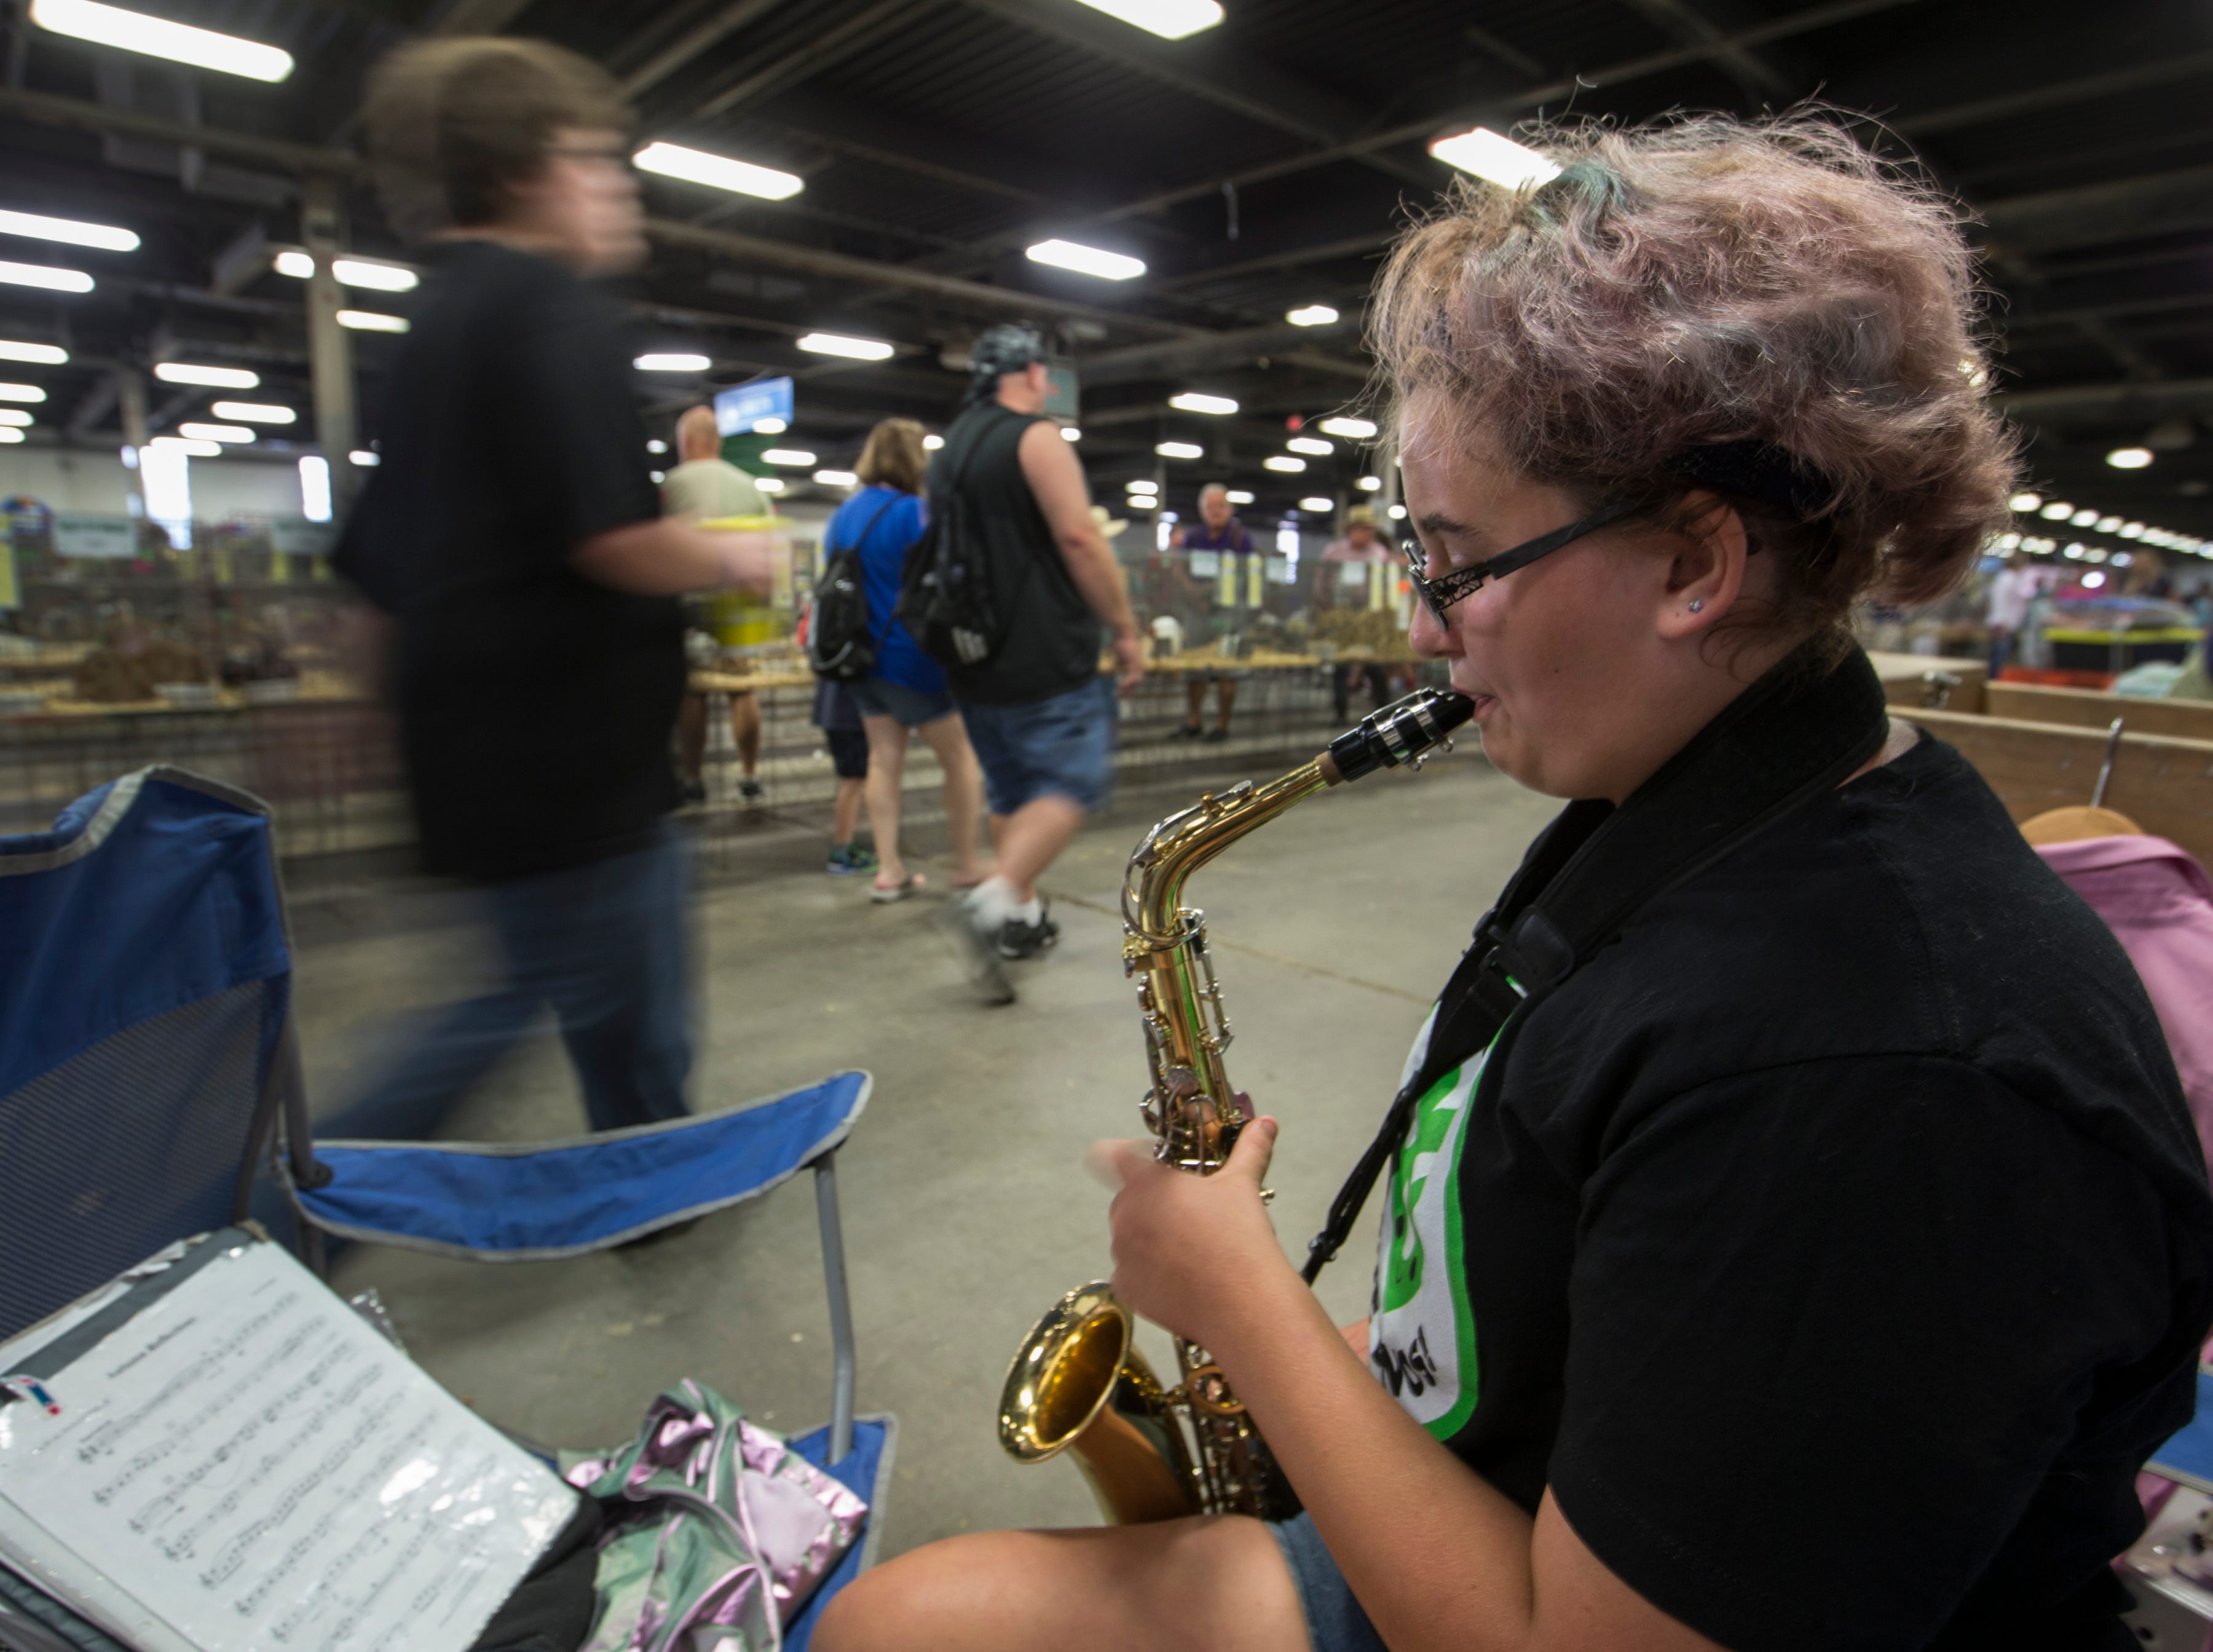 Taylor Fryman, 13, practiced playing the saxophone while keeping a eye on the rabbits she is showing at the Kentucky State Fair. Aug. 17, 2018.